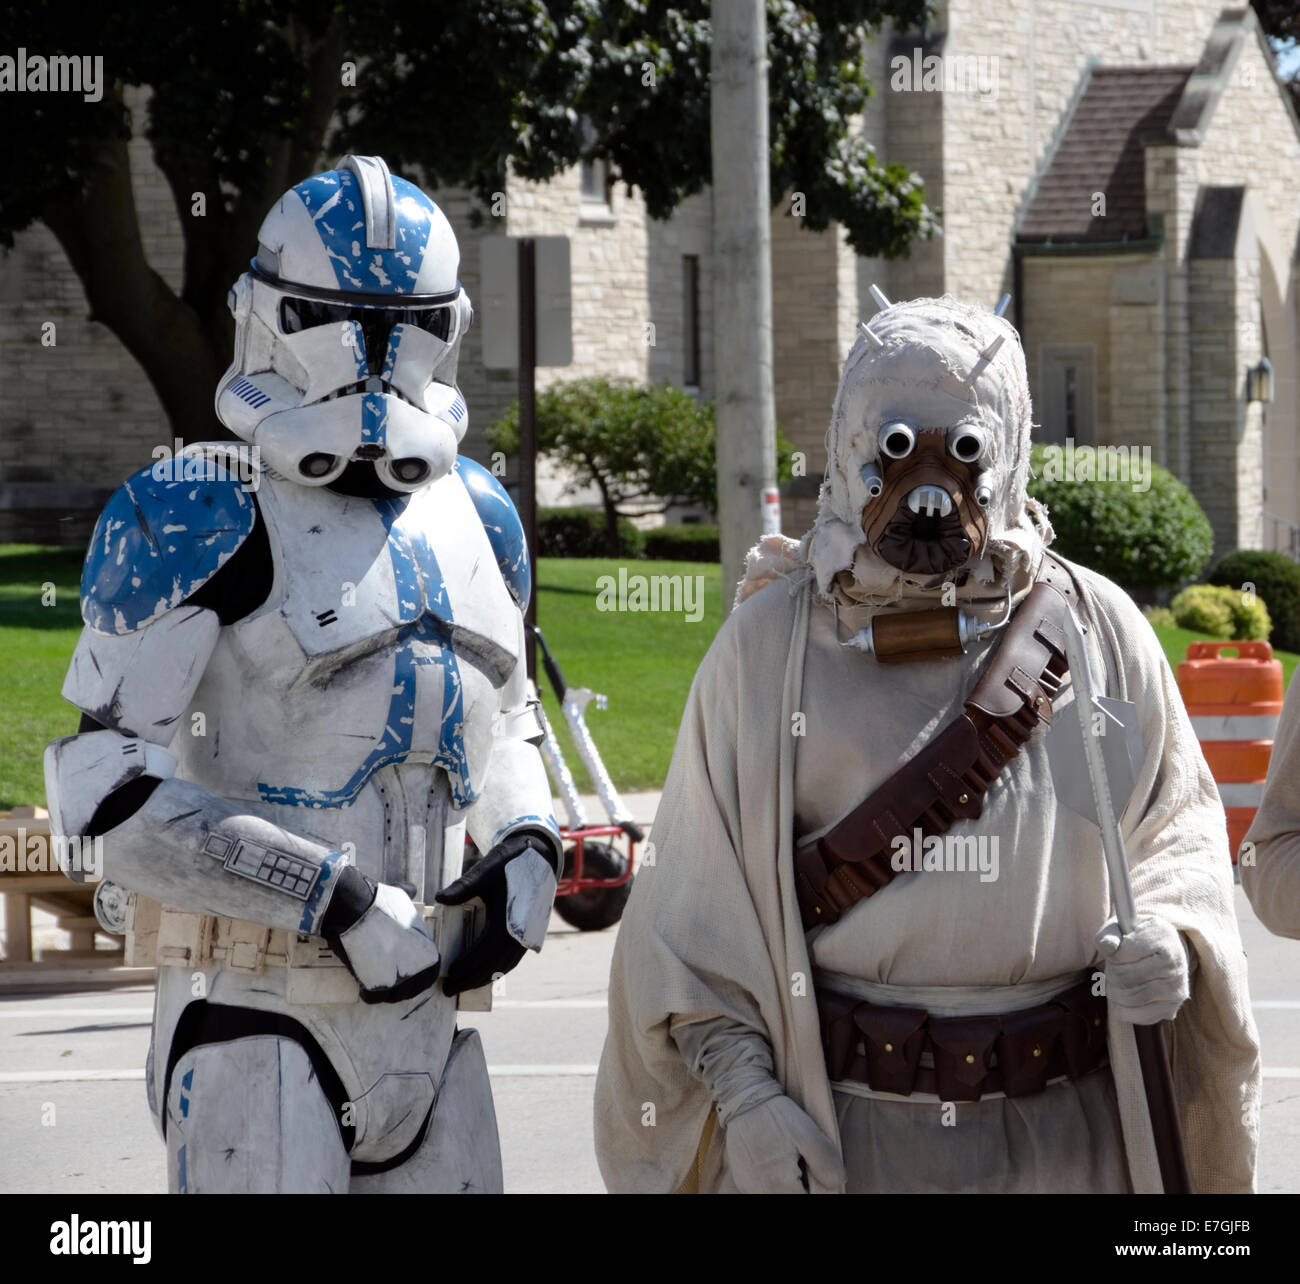 Star Wars characters clone trooper and Tusken Raider at Sputnikfest, Manitowoc, Wisconsin - Stock Image